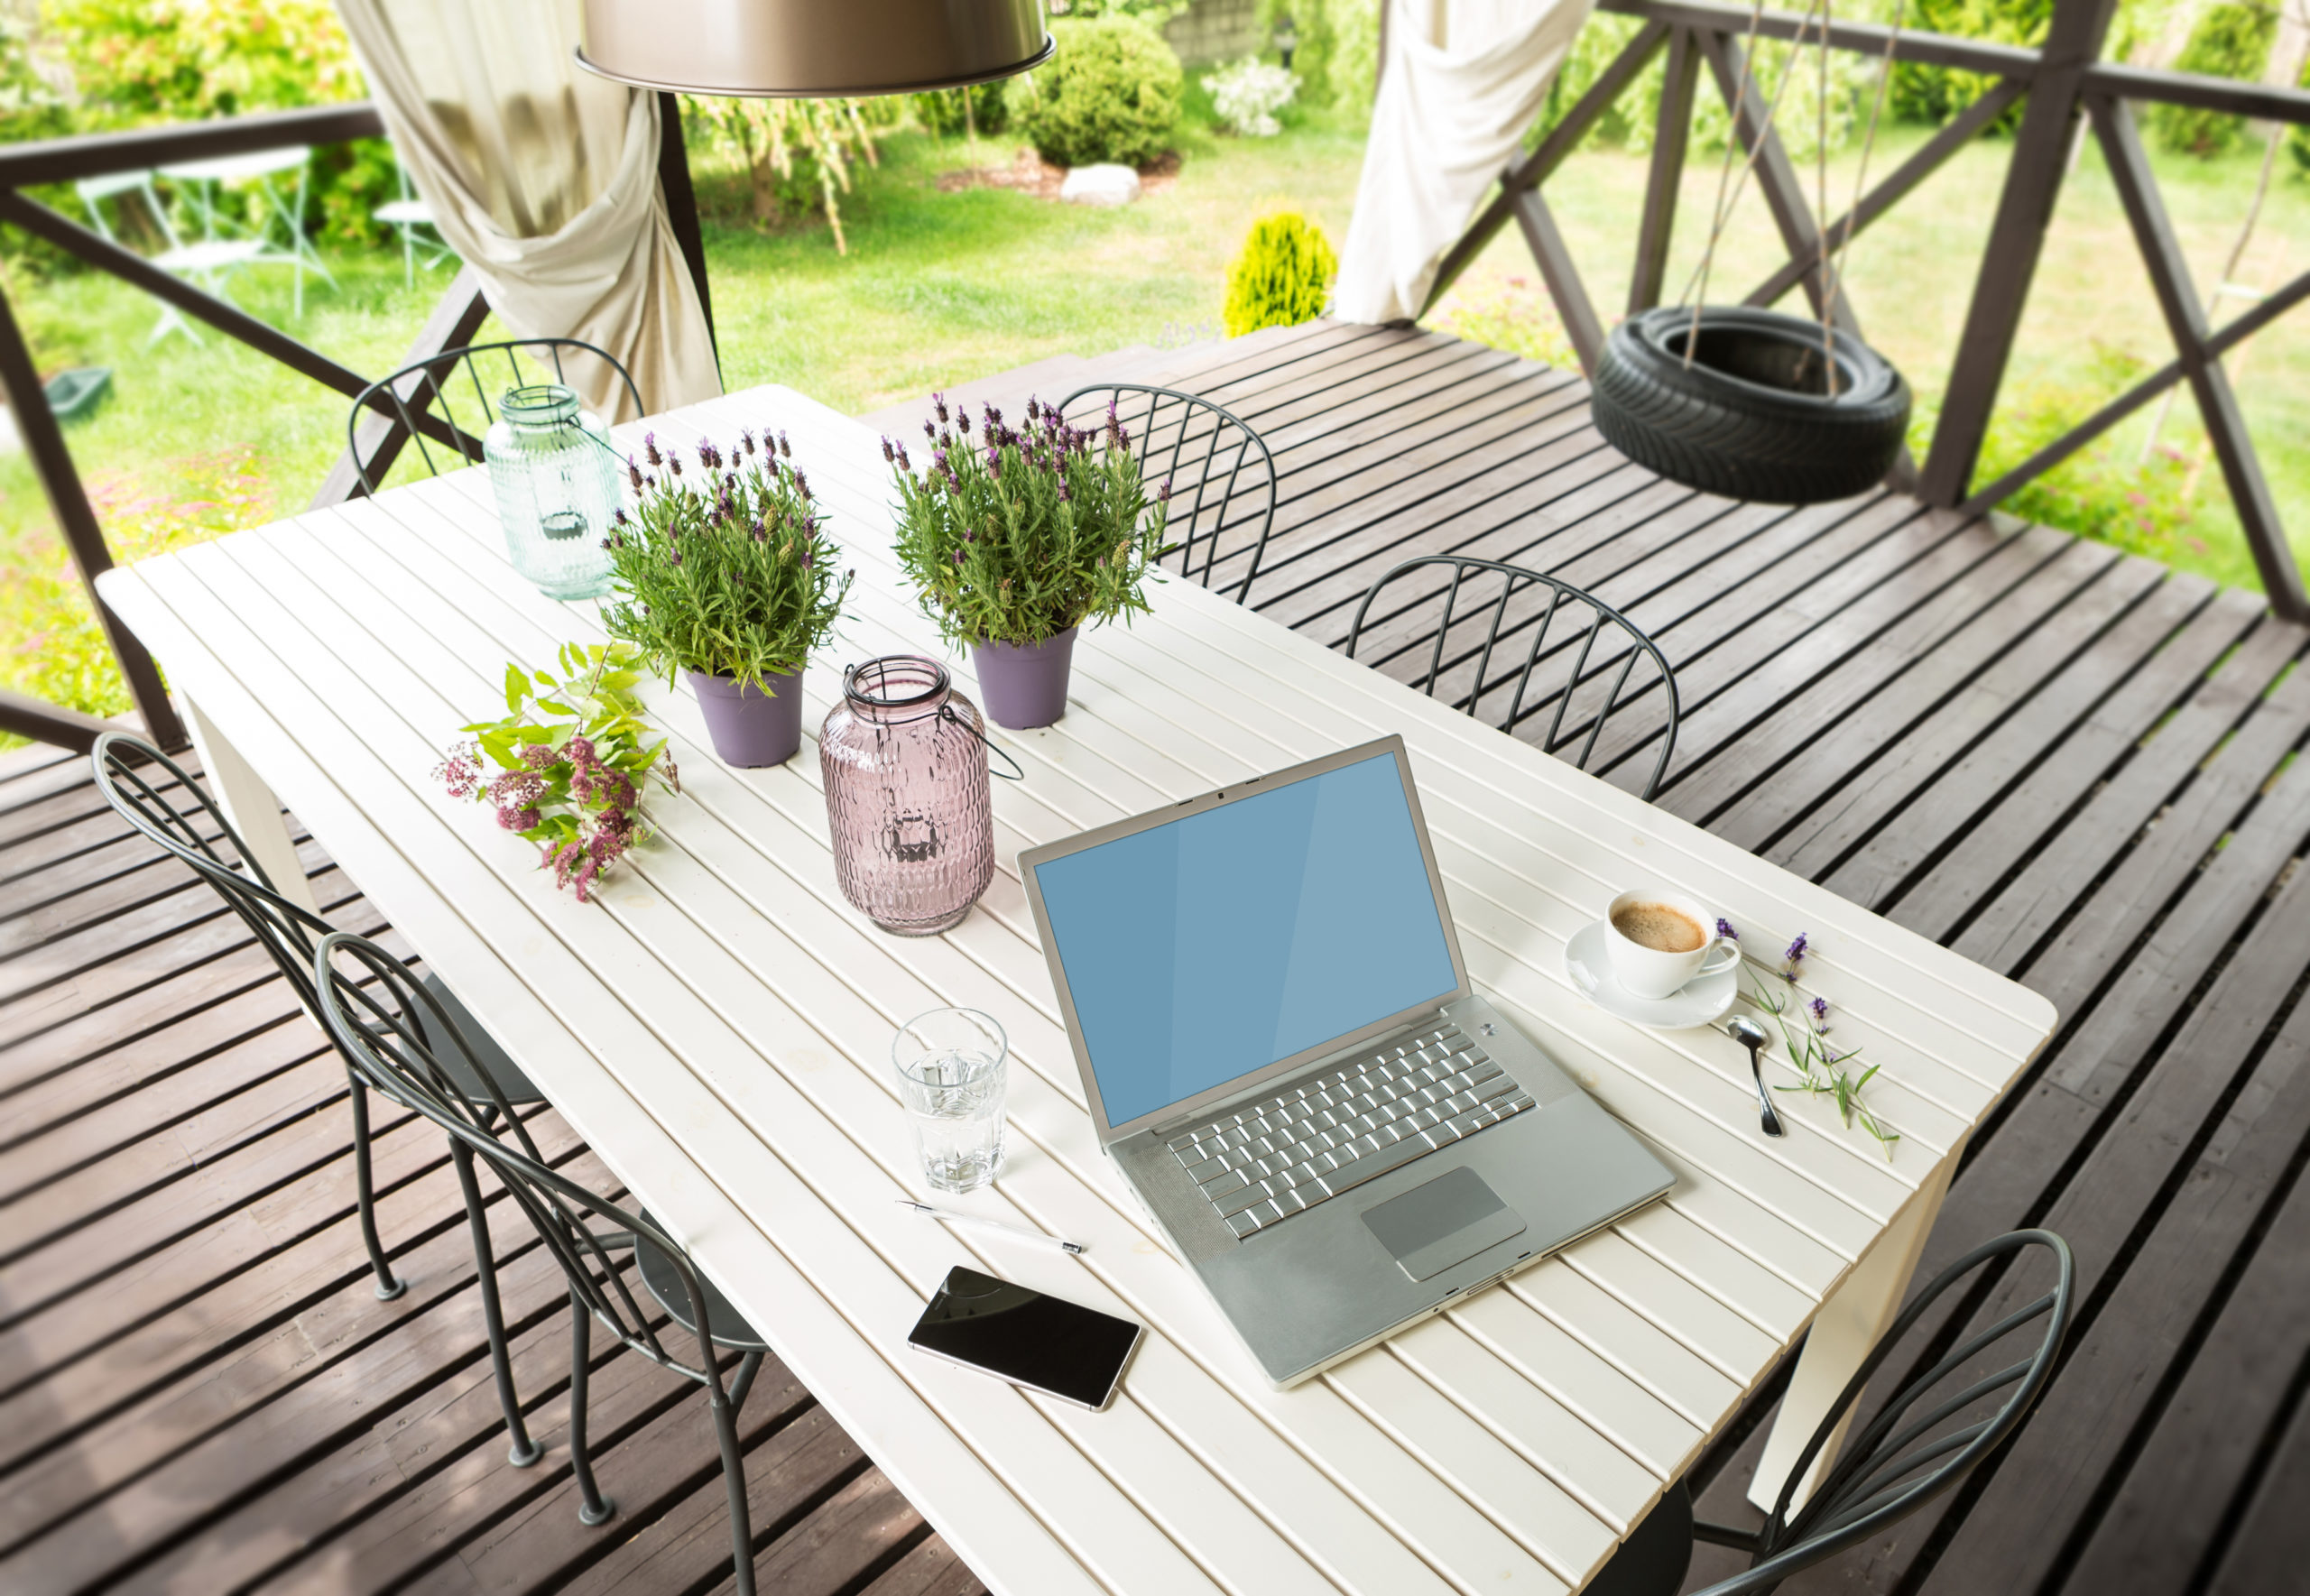 Laptop computer and mobile phone (smartphone) on a porch